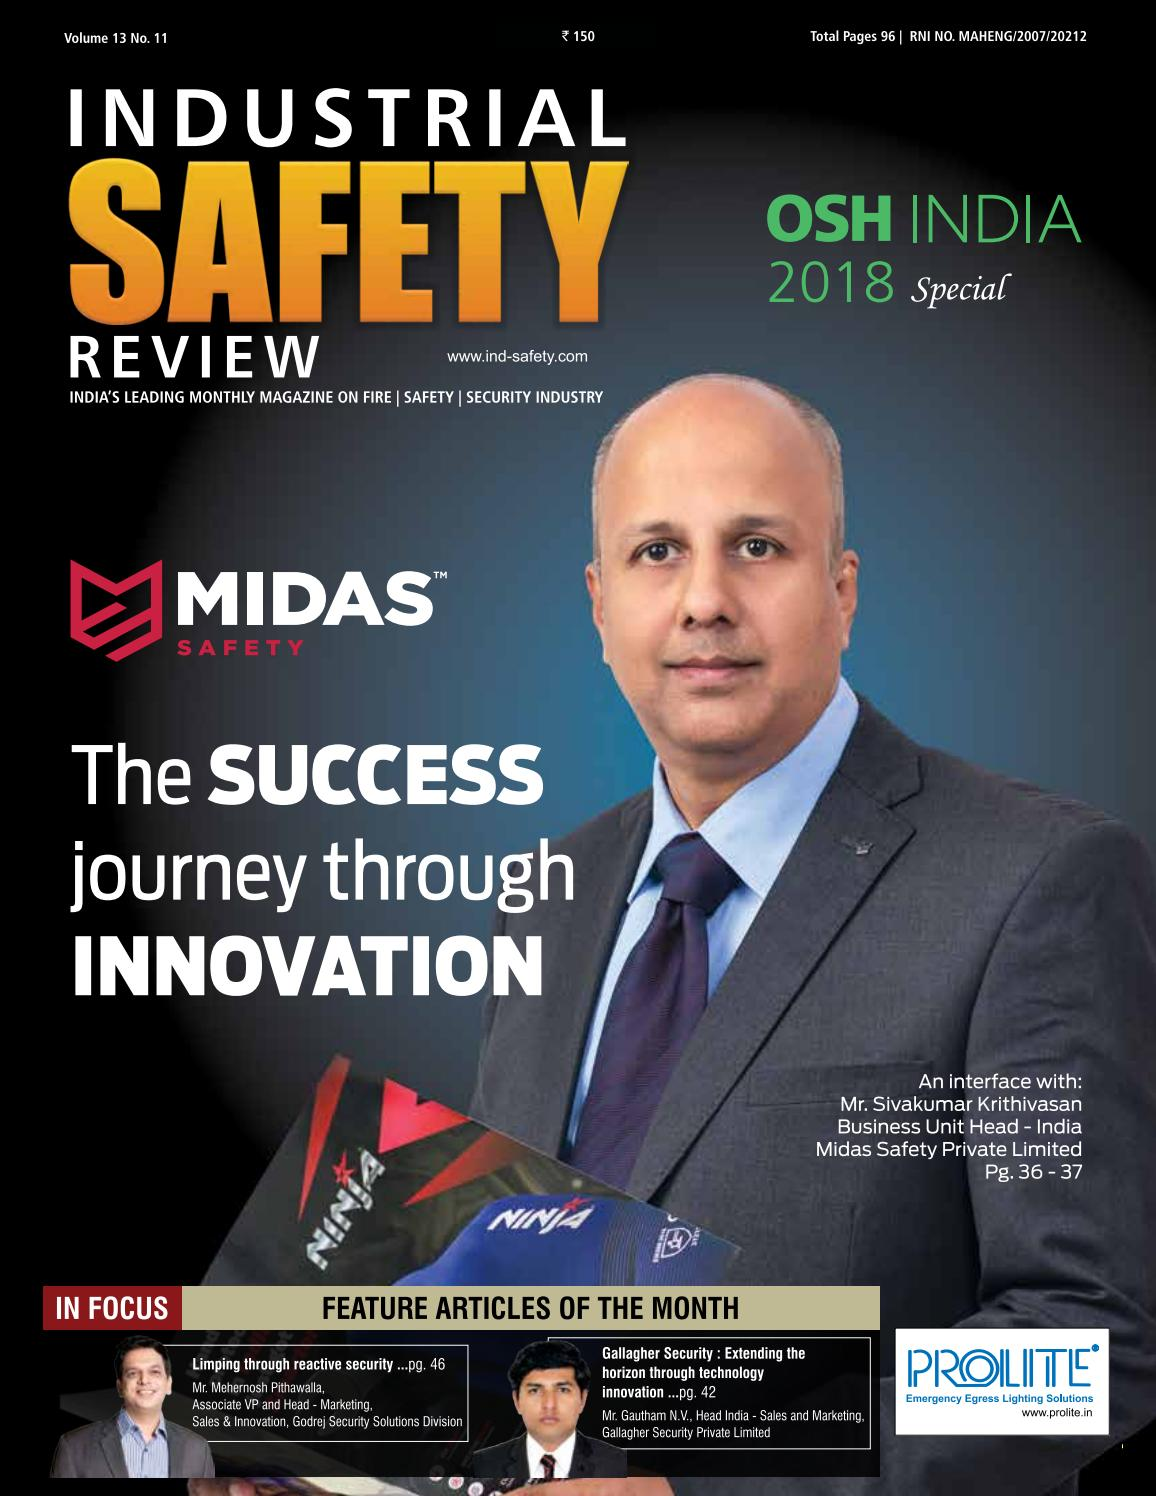 Industrial Safety Review OSH INDIA 2018 Special by Divya